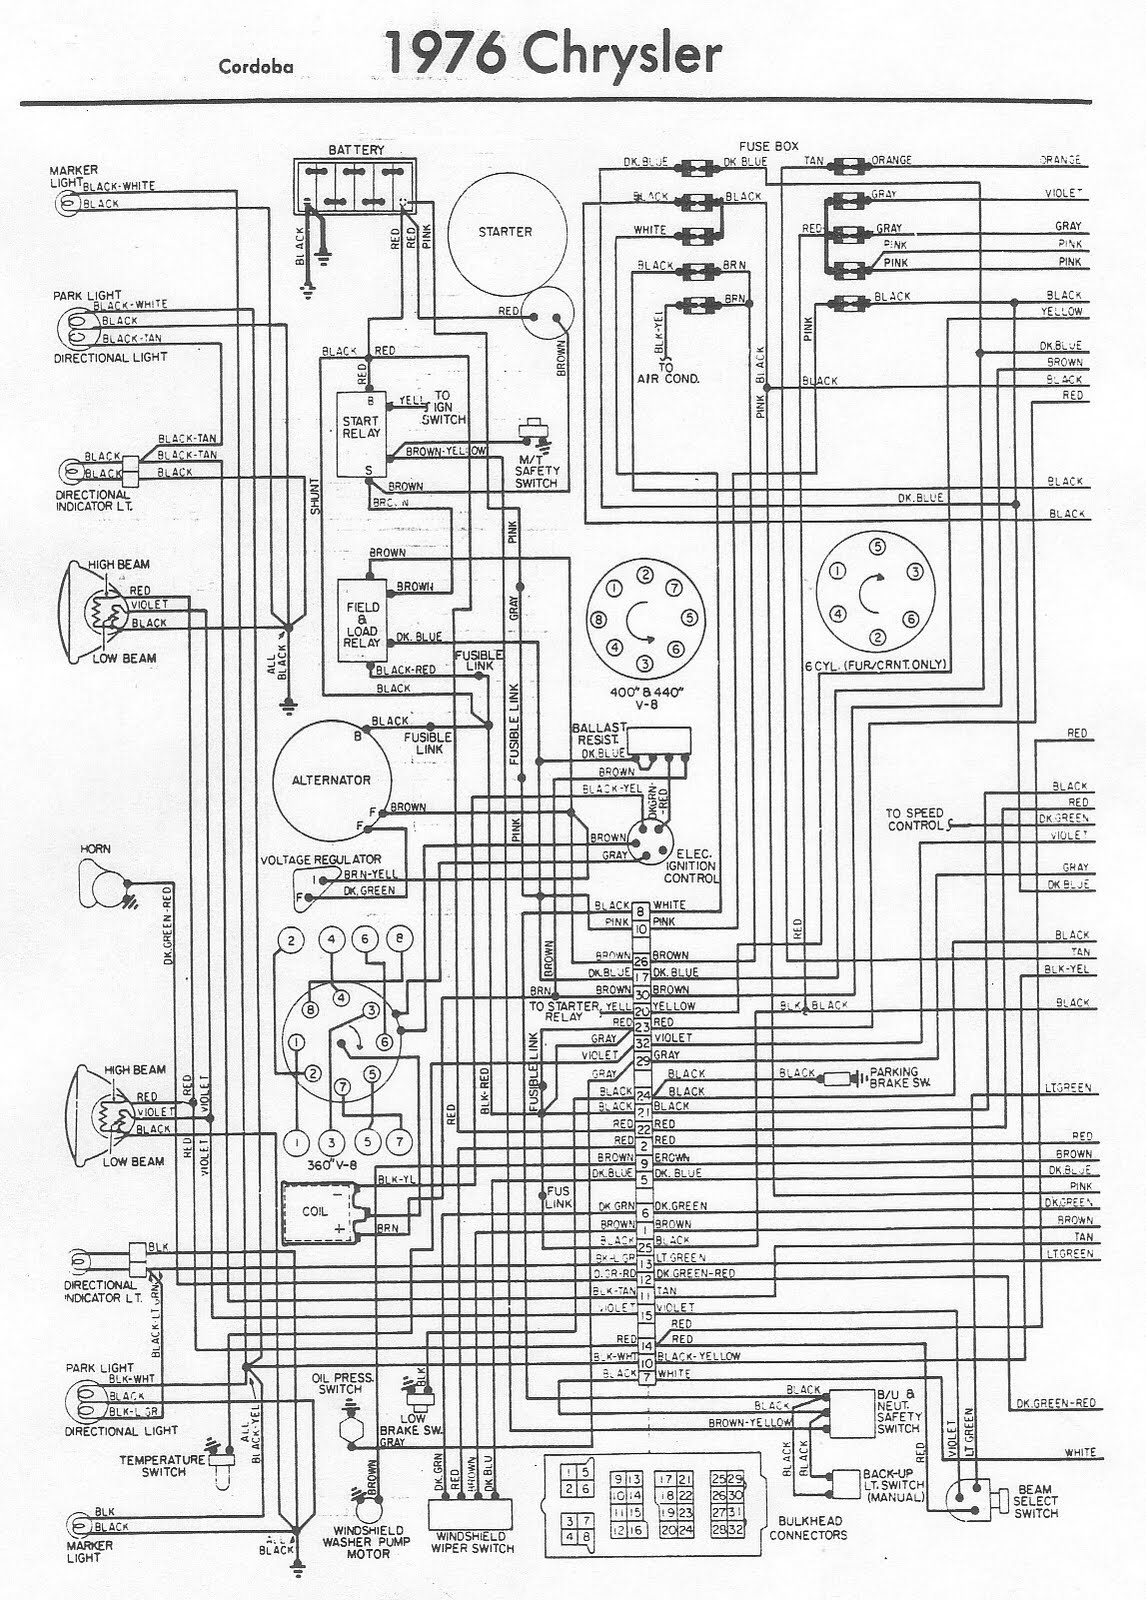 1976 chrysler town country 1976 toyota celica engine 1976 camaro engine  wiring diagram 1976 porsche 912e